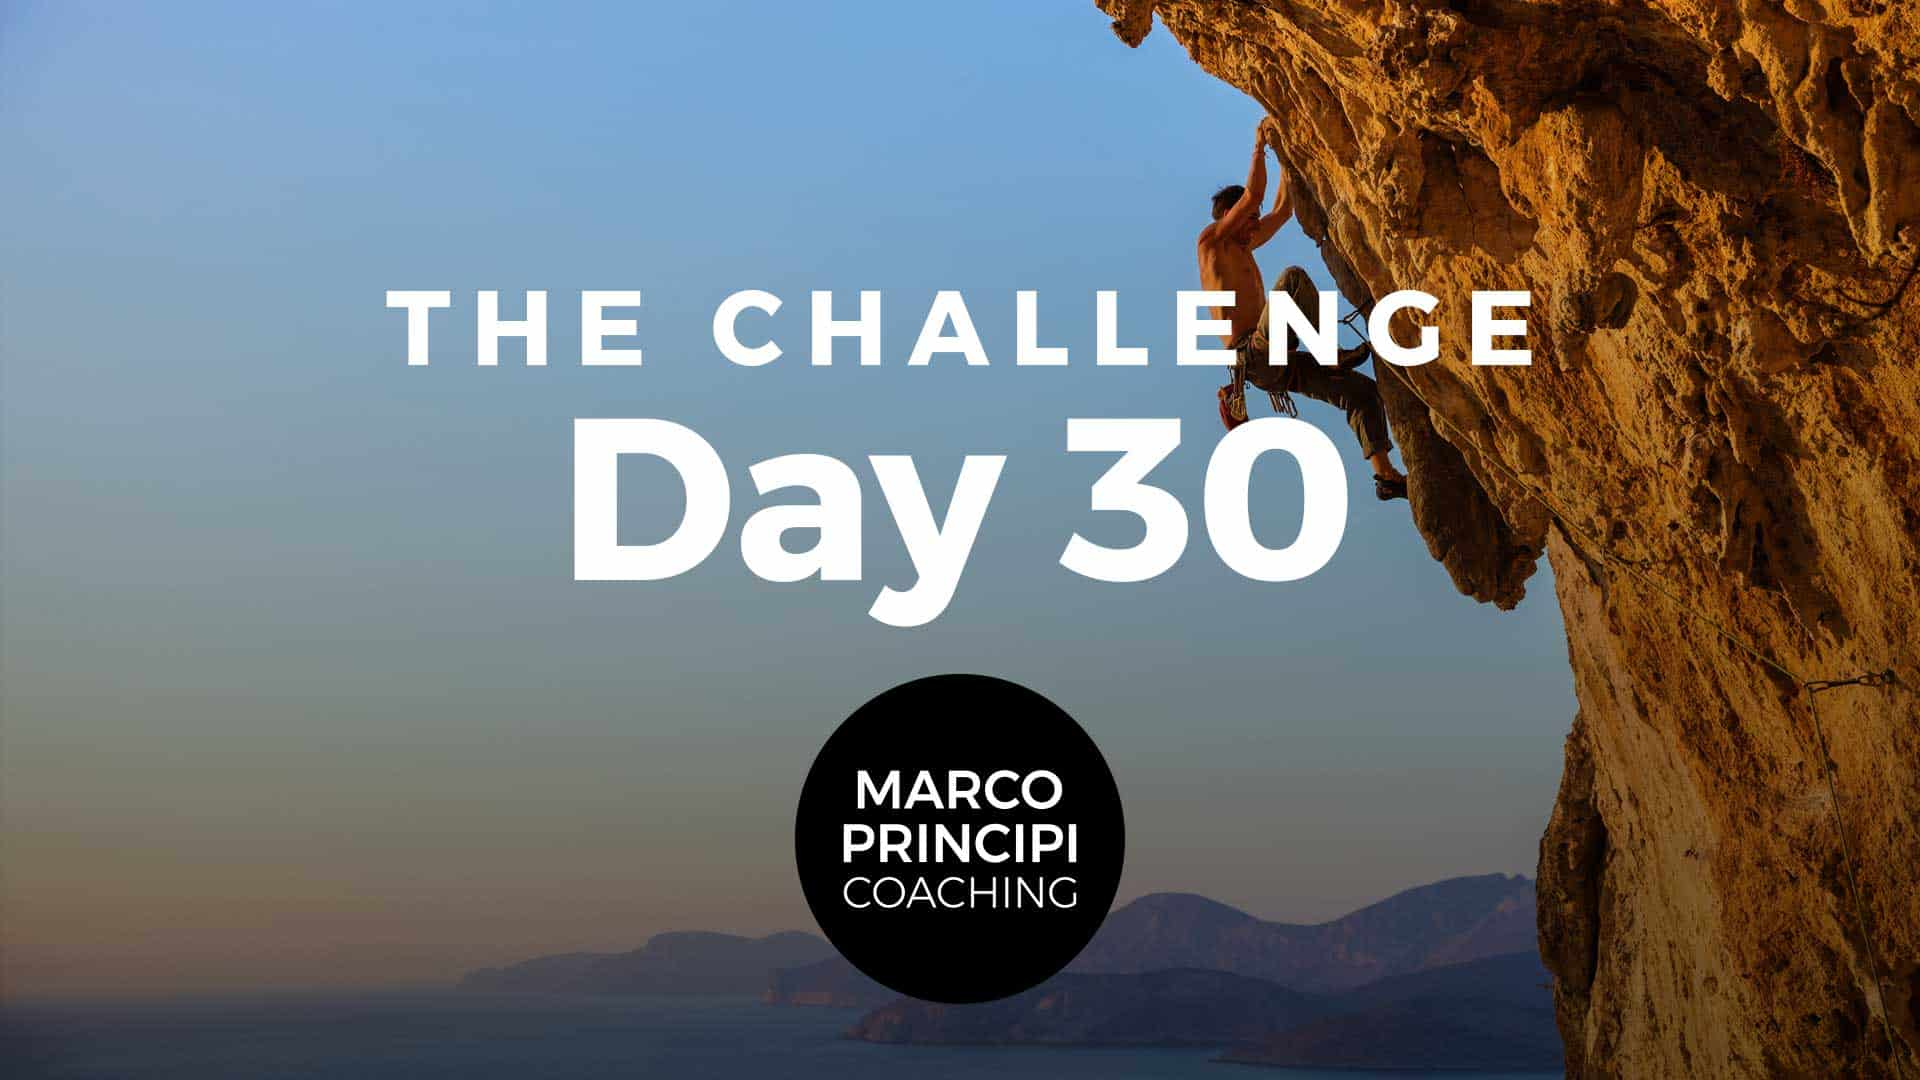 Marco Principi YT Cover The Challenge Day 030